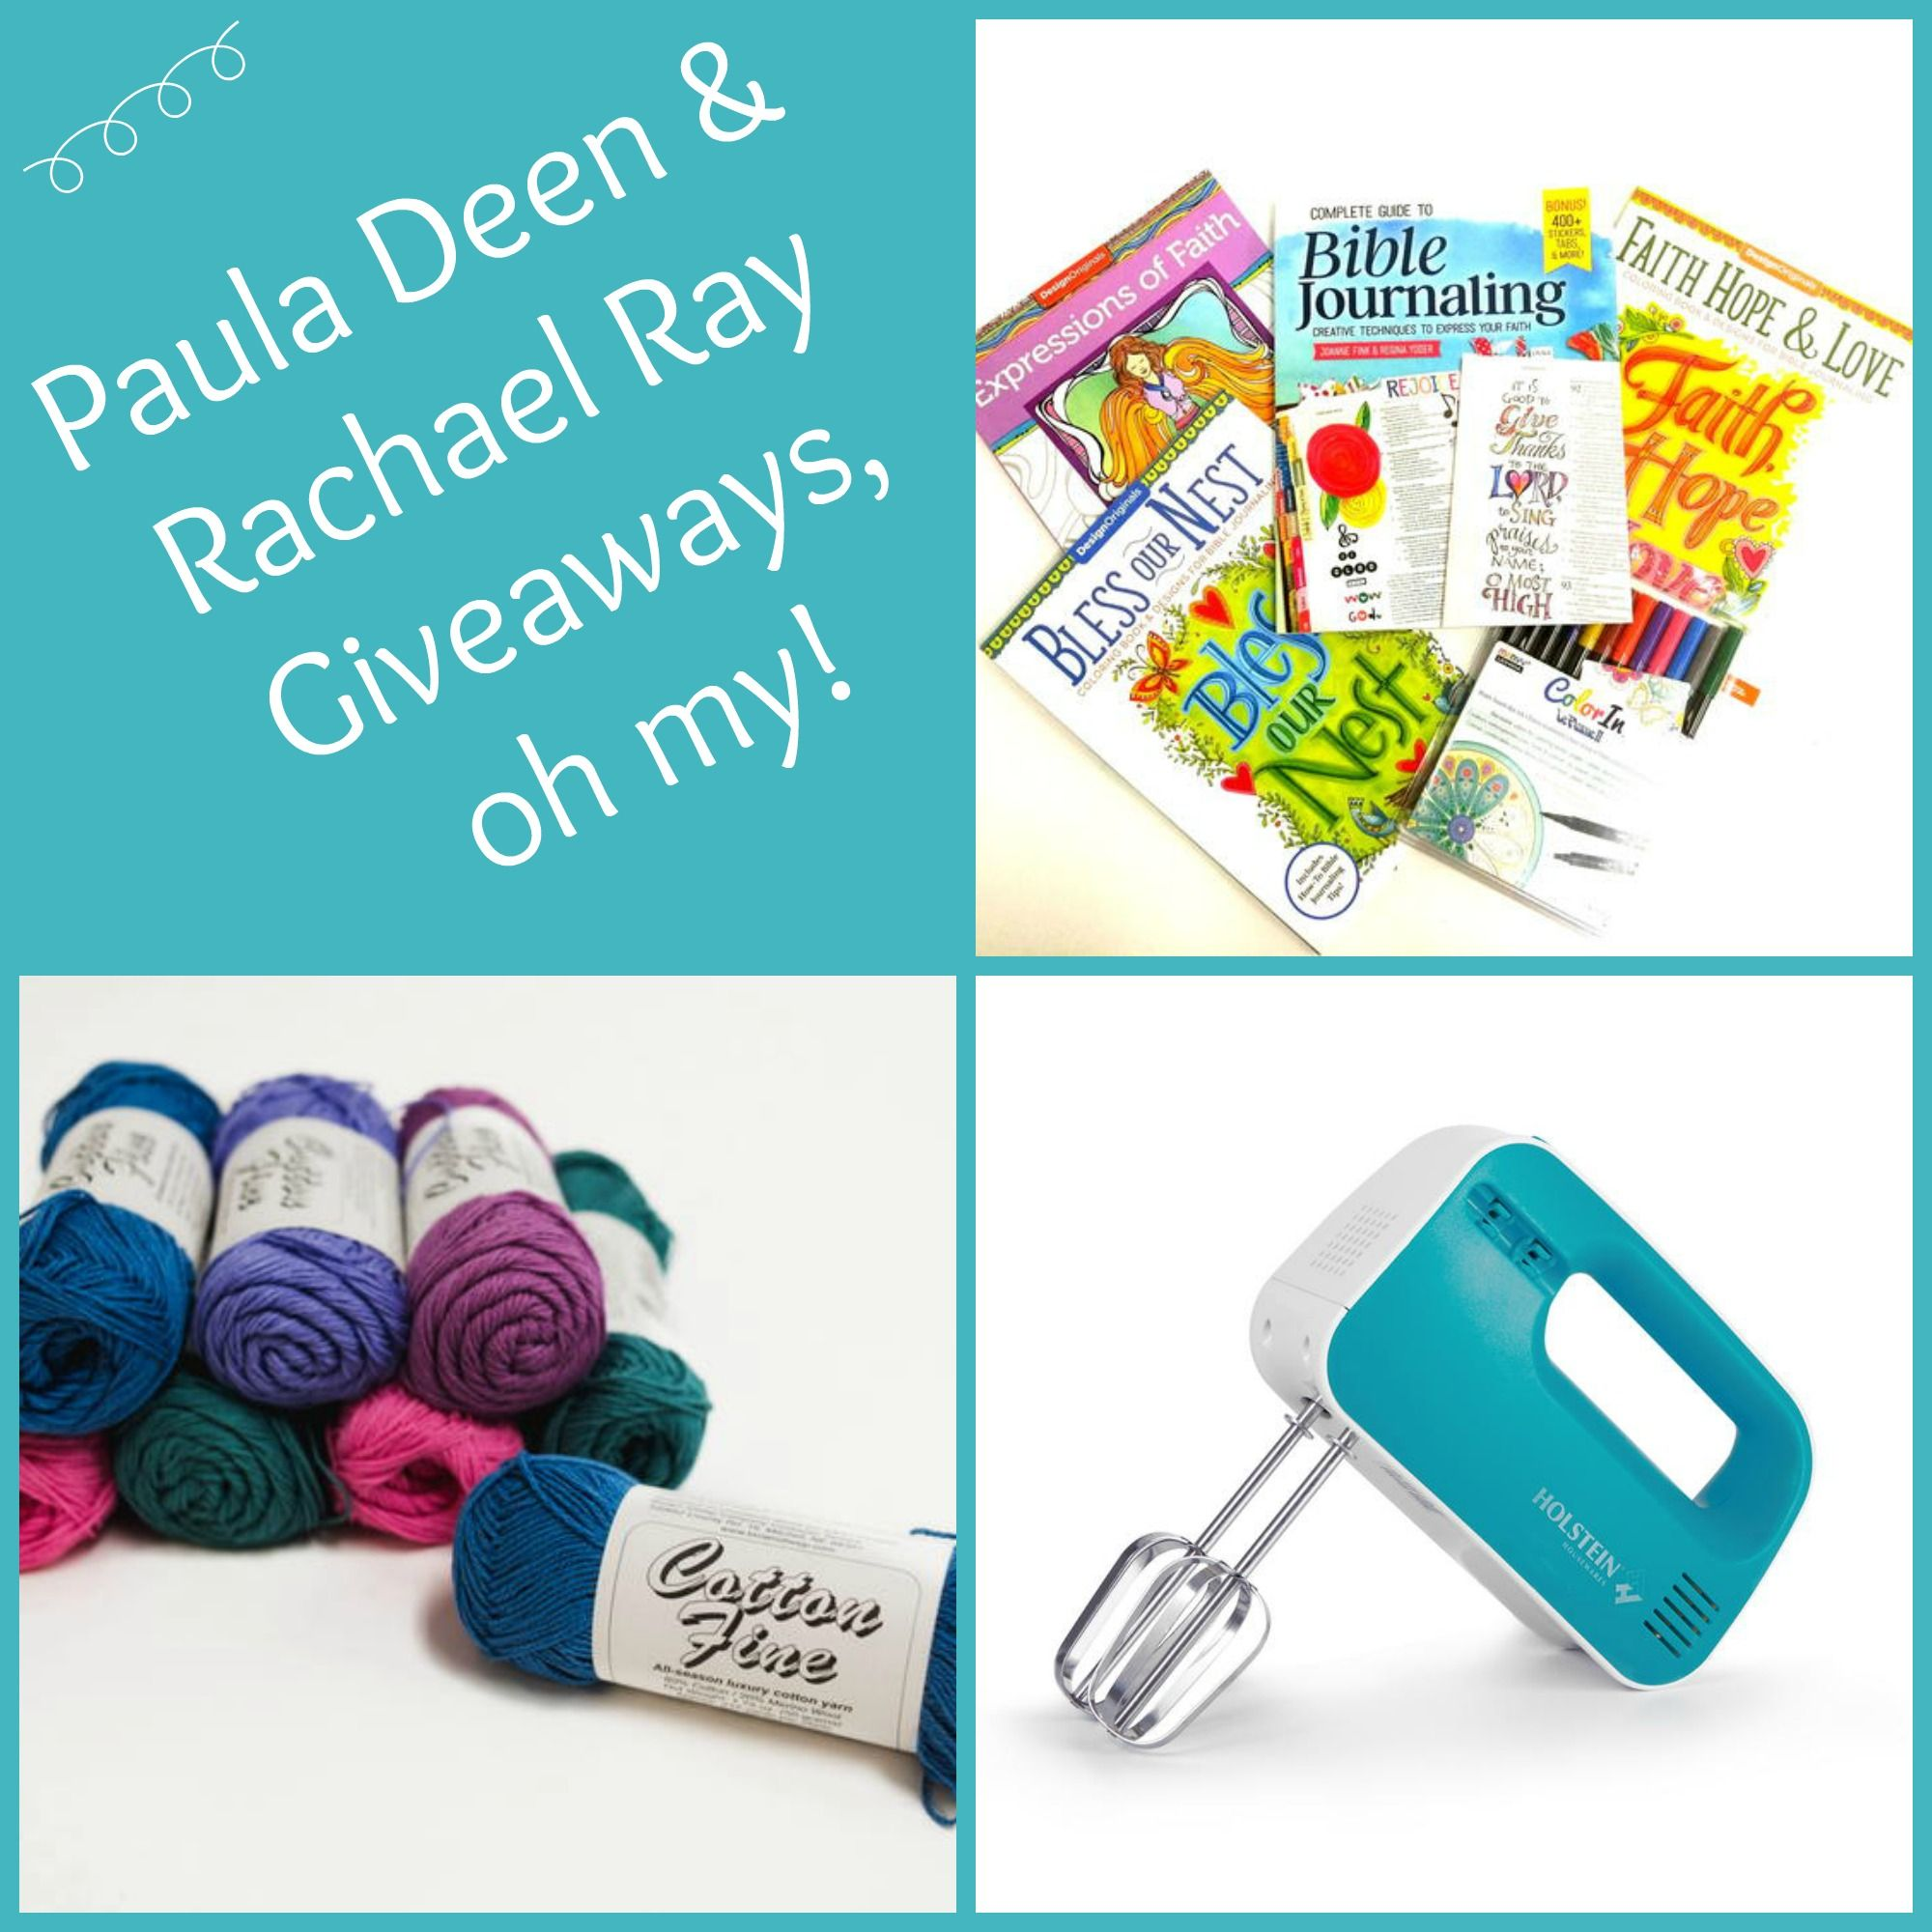 Paula Deen and Rachael Ray Giveaways! Craft giveaway